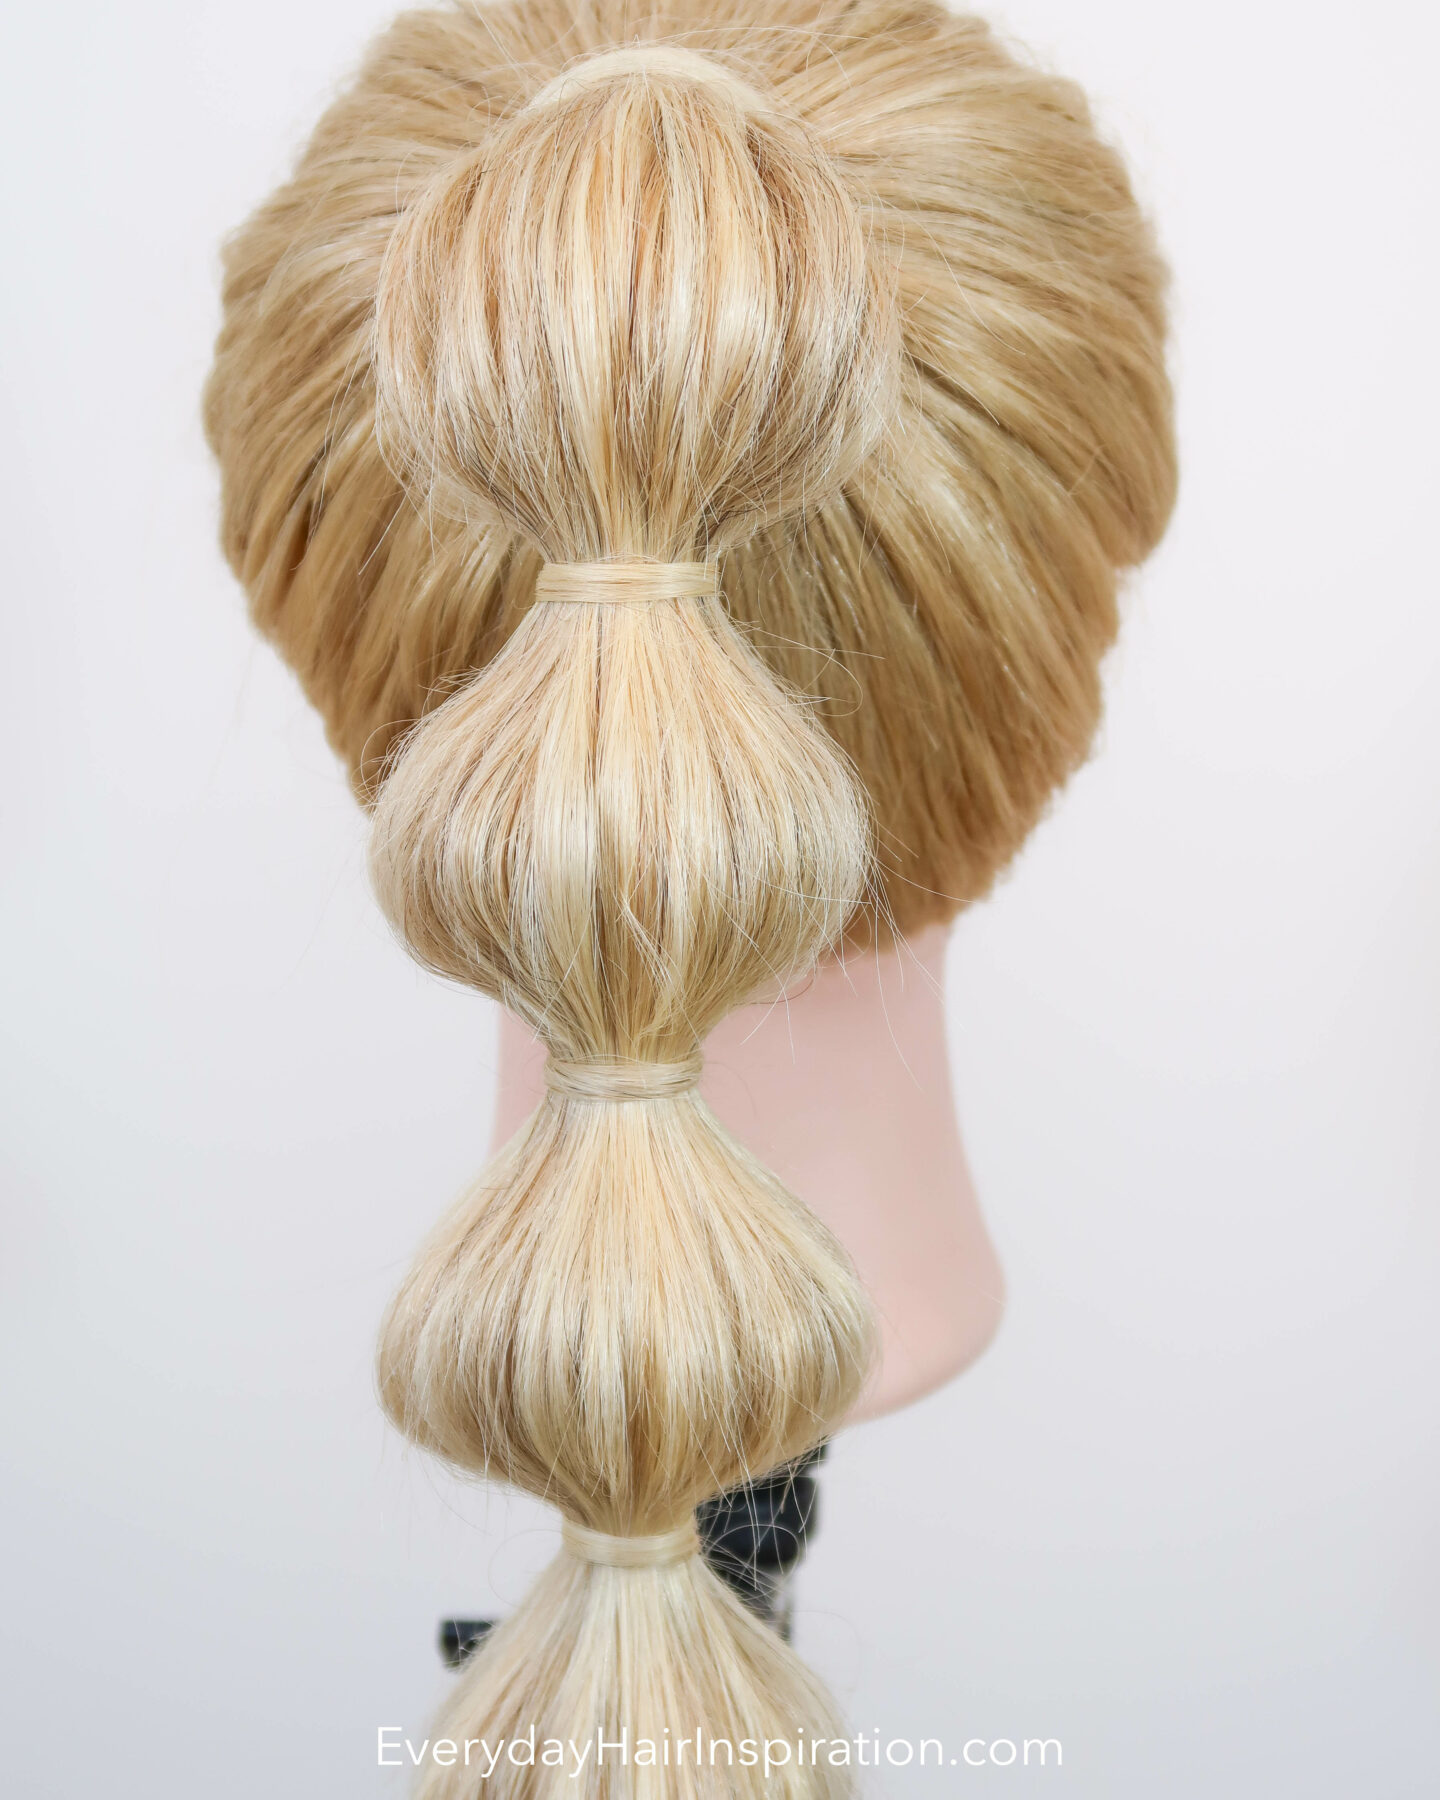 Blonde hairdresser doll, seen from the back with a high ponytail with a bubble braid down the hair. Closeup.